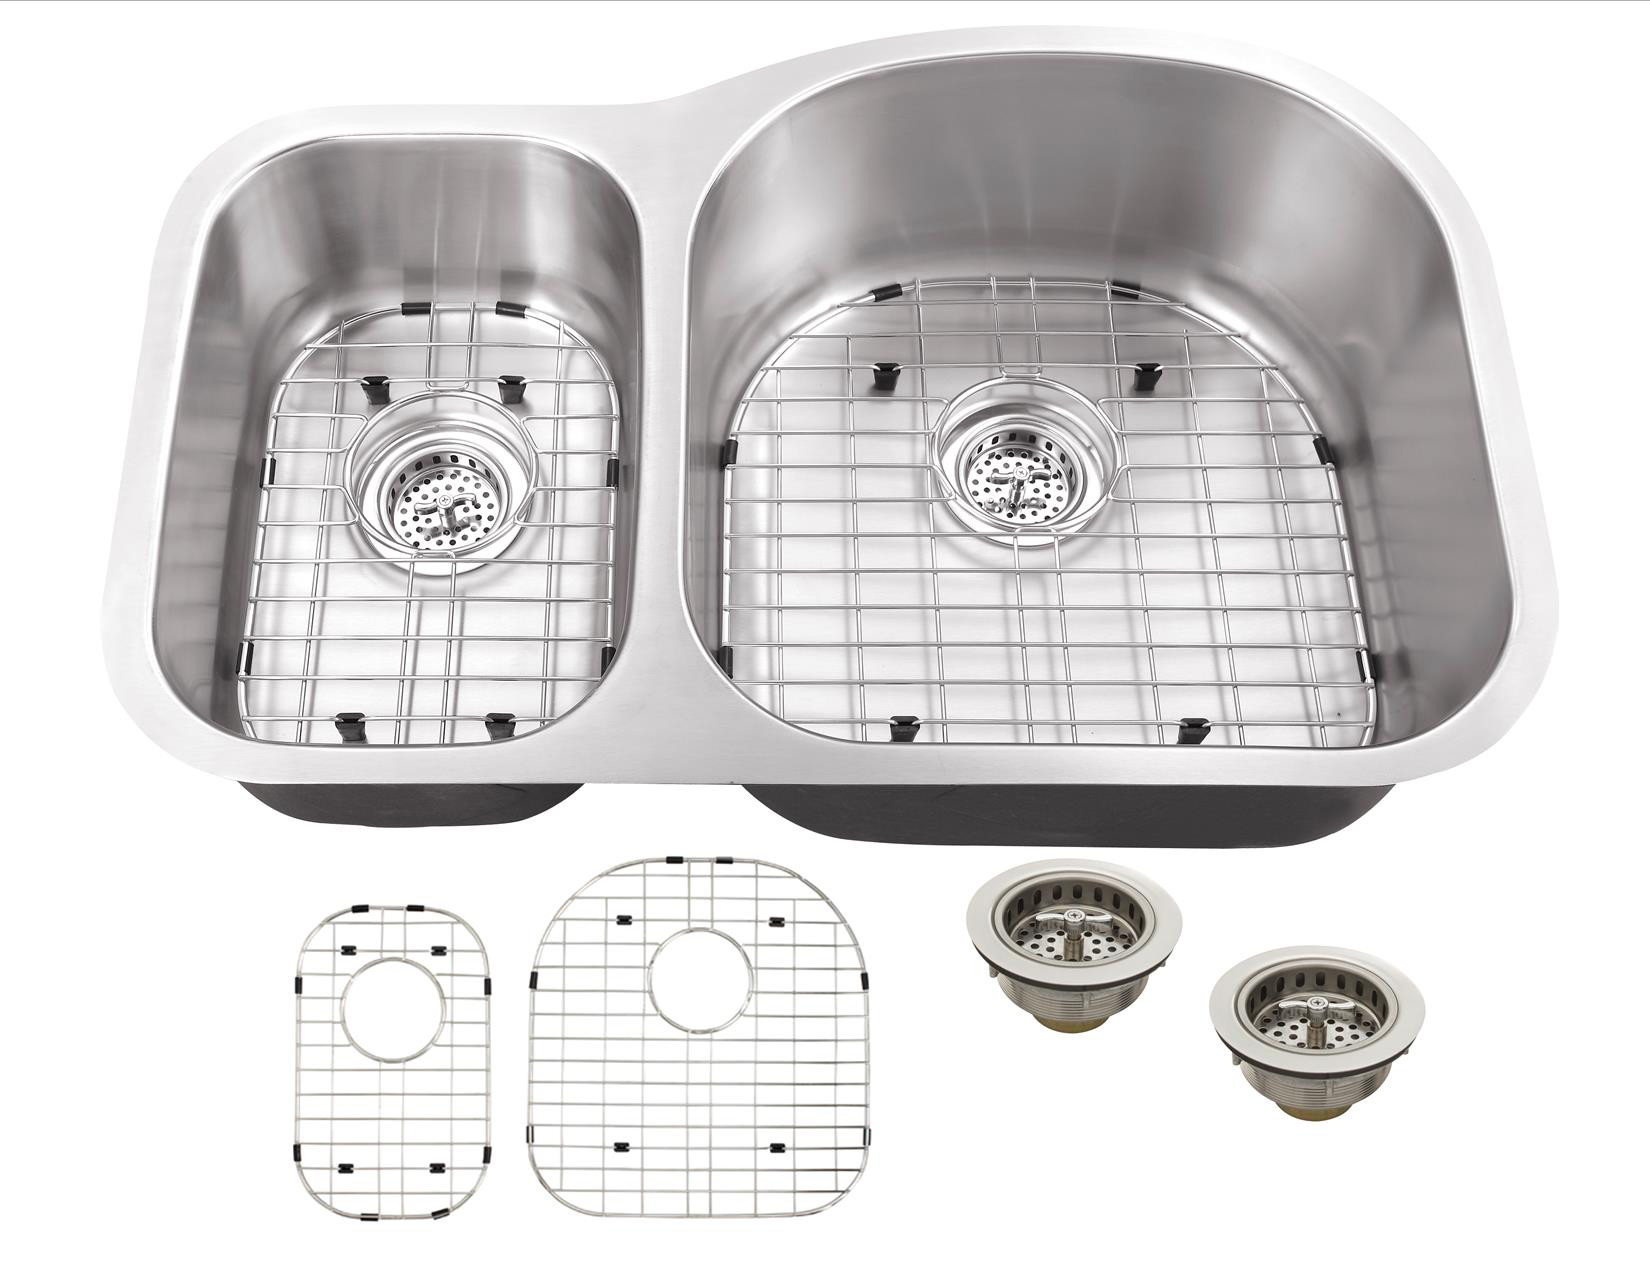 Cahaba CA122532 18 Gauge Double Bowl Kitchen Sink With Grid Sets and Drain